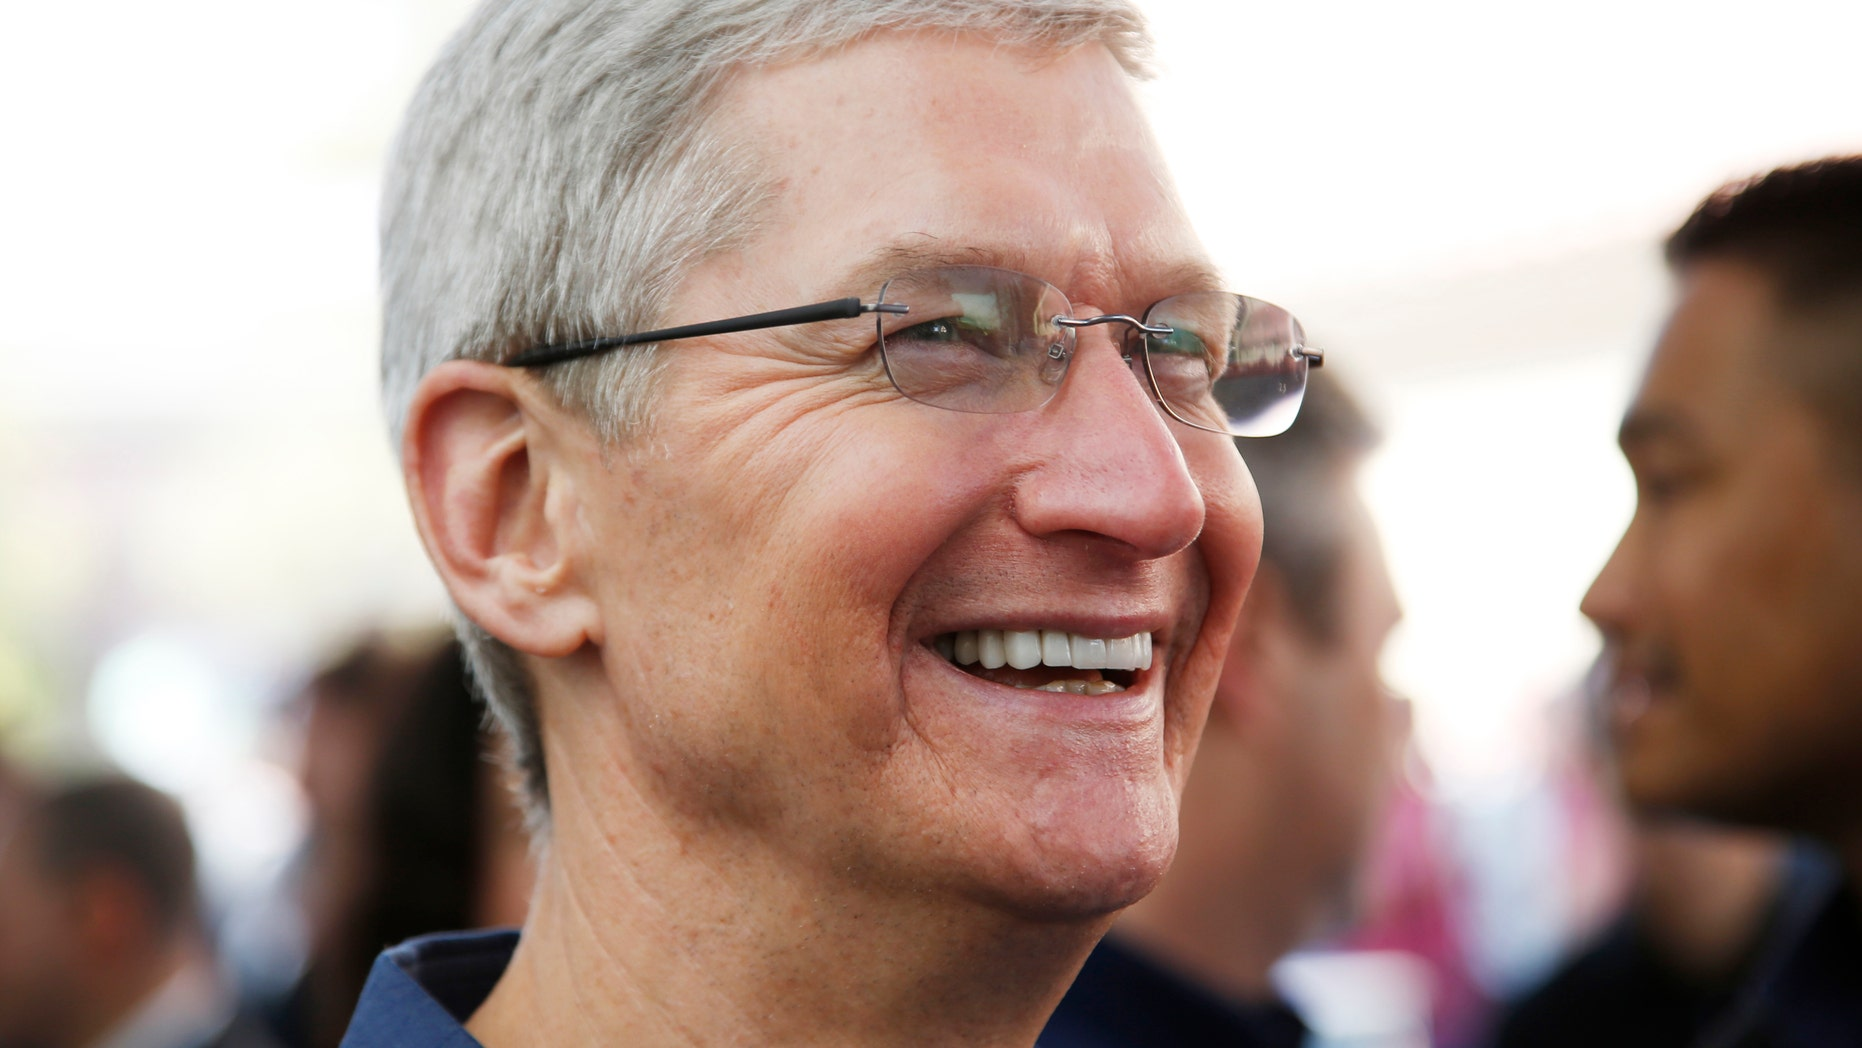 Apple CEO Tim Cook speaks to members of the media during an Apple event announcing the iPhone 6 and the Apple Watch at the Flint Center in Cupertino, California, September 9, 2014. REUTERS/Stephen Lam (United States - Tags: SCIENCE TECHNOLOGY BUSINESS) - RTR45L7U